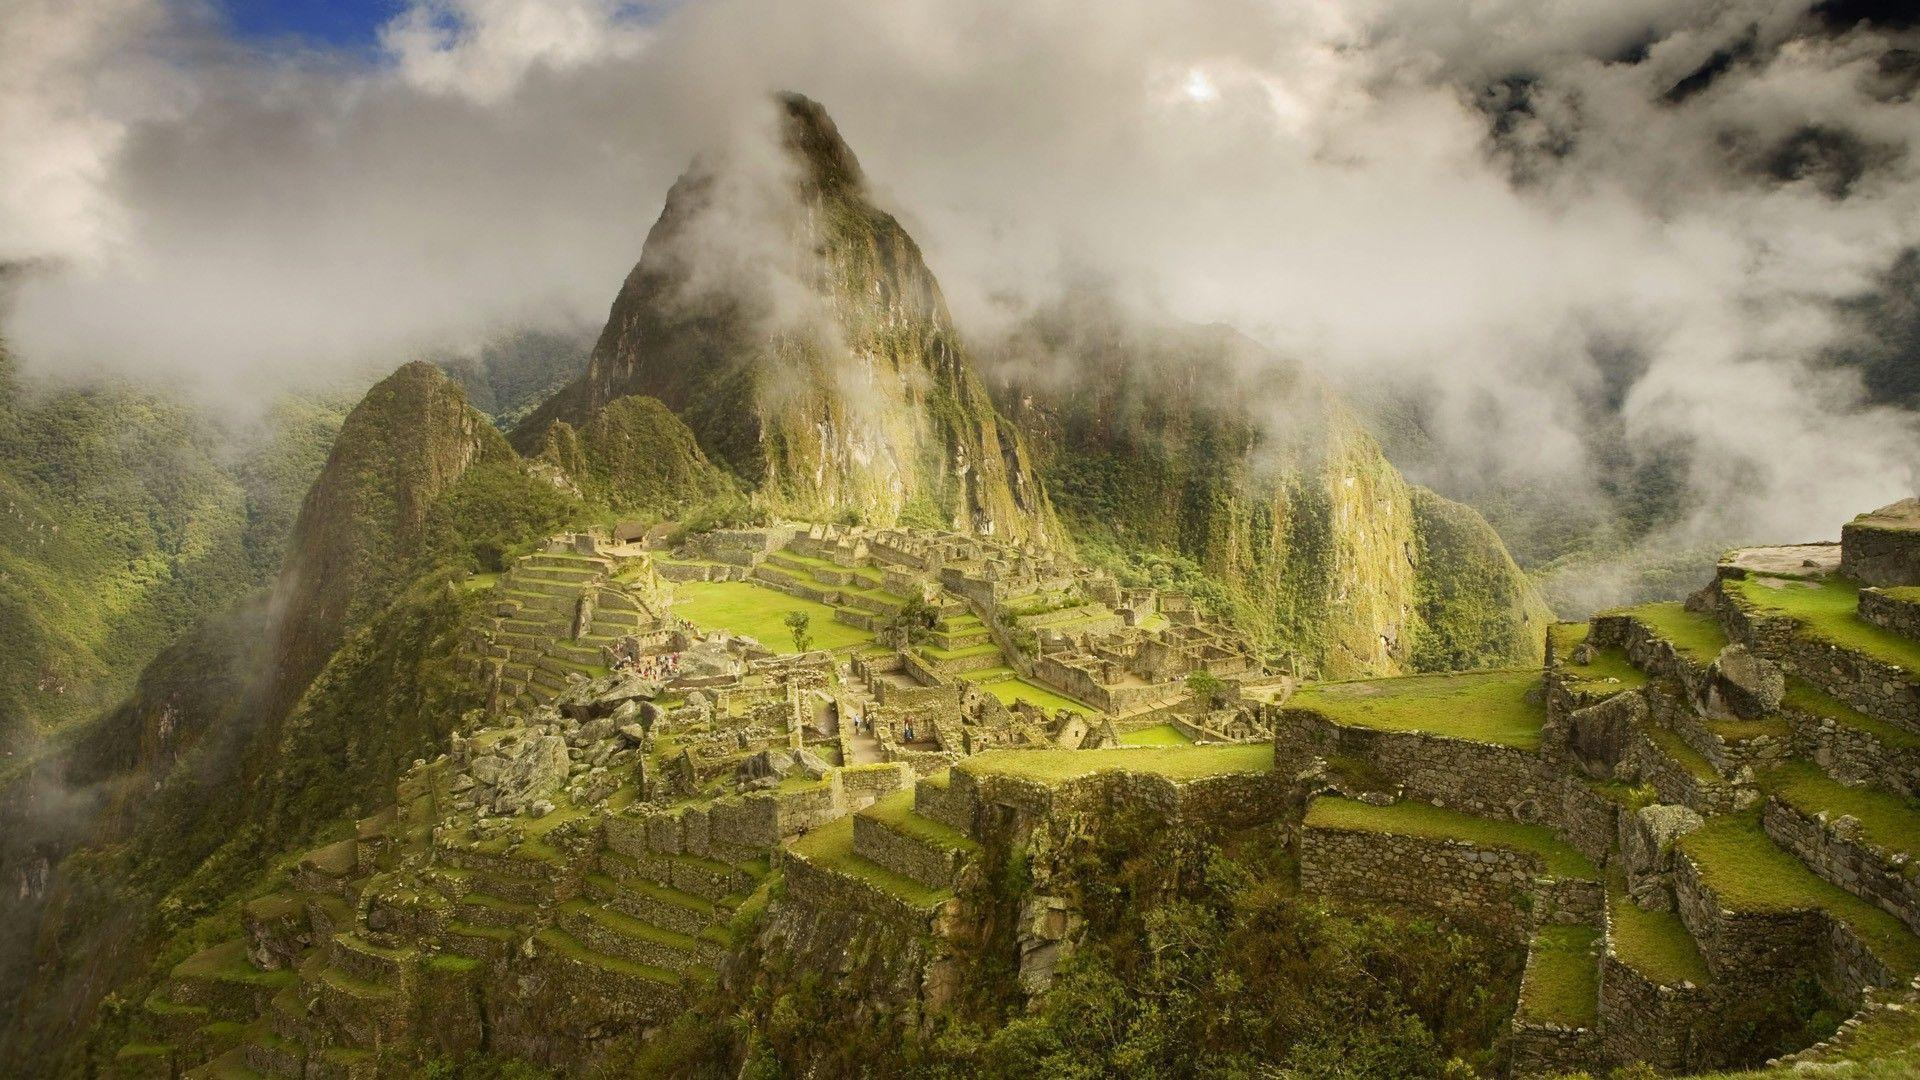 The Peru mountain wallpapers and image